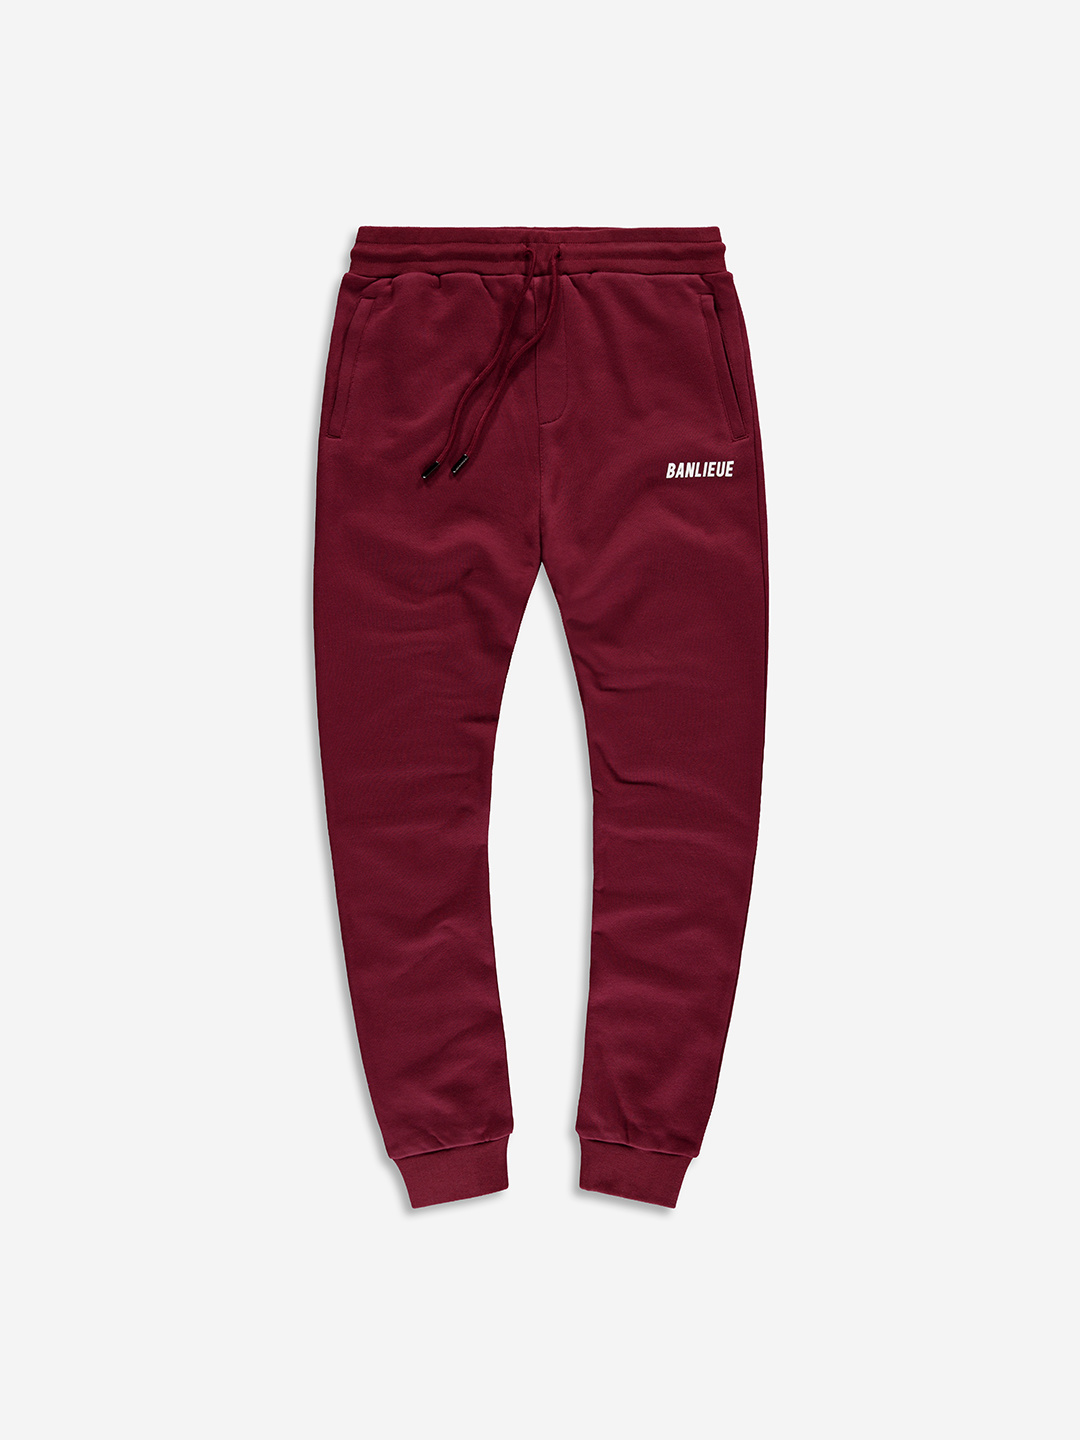 TXT SWEATPANTS BURGUNDY